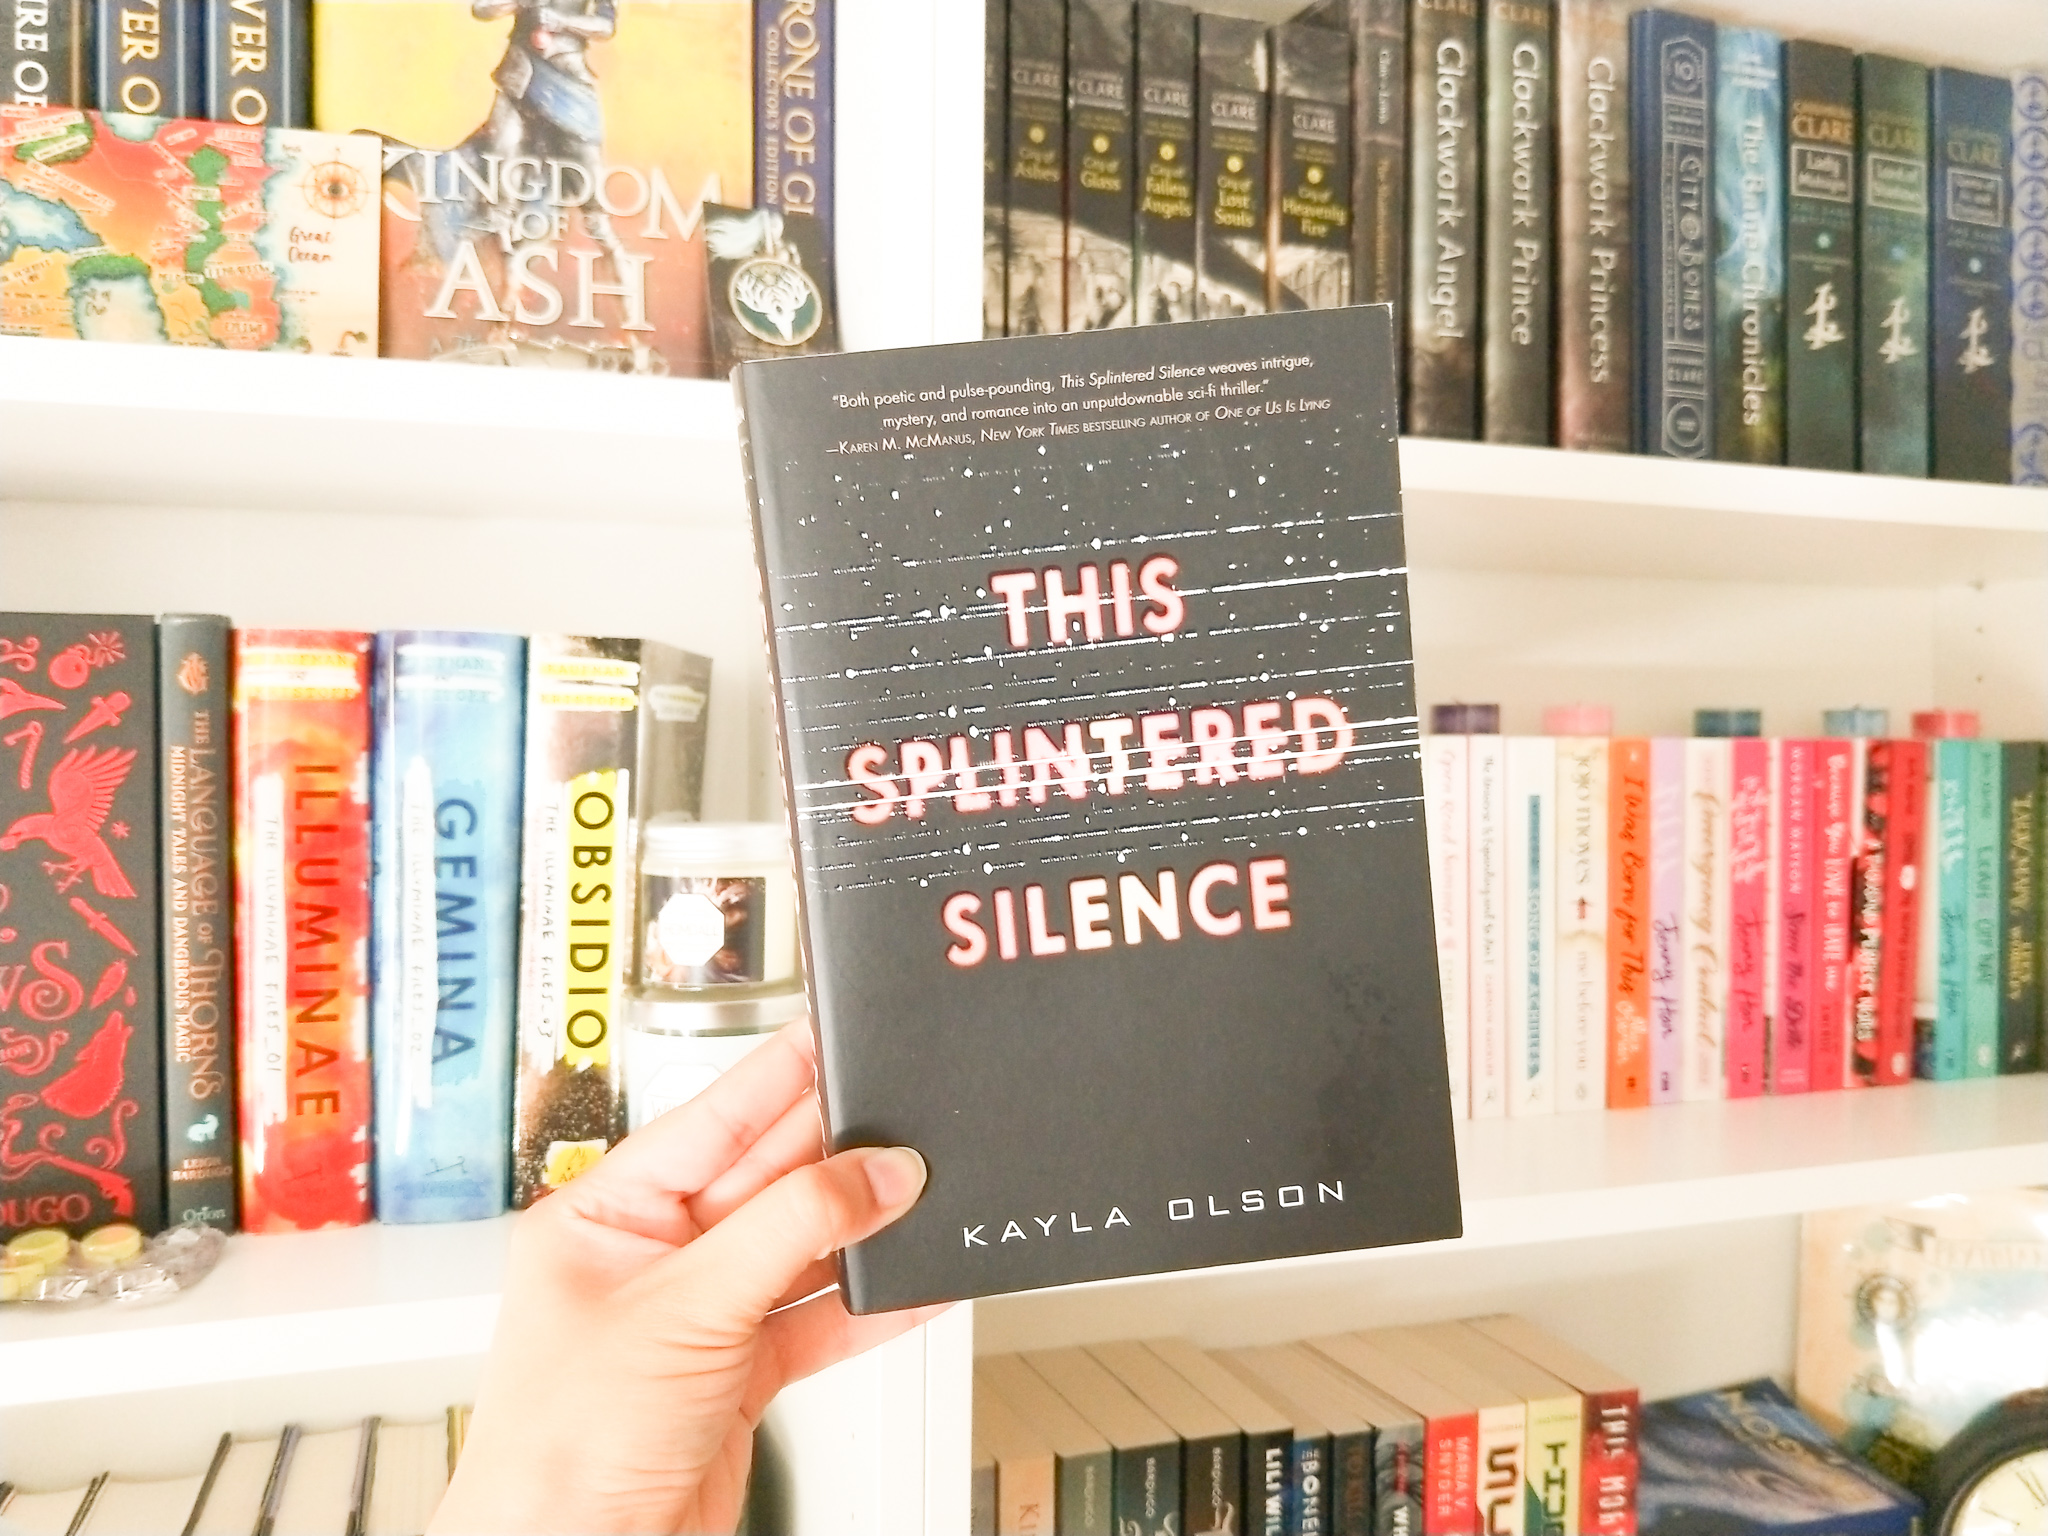 This Splintered Silence Book Review